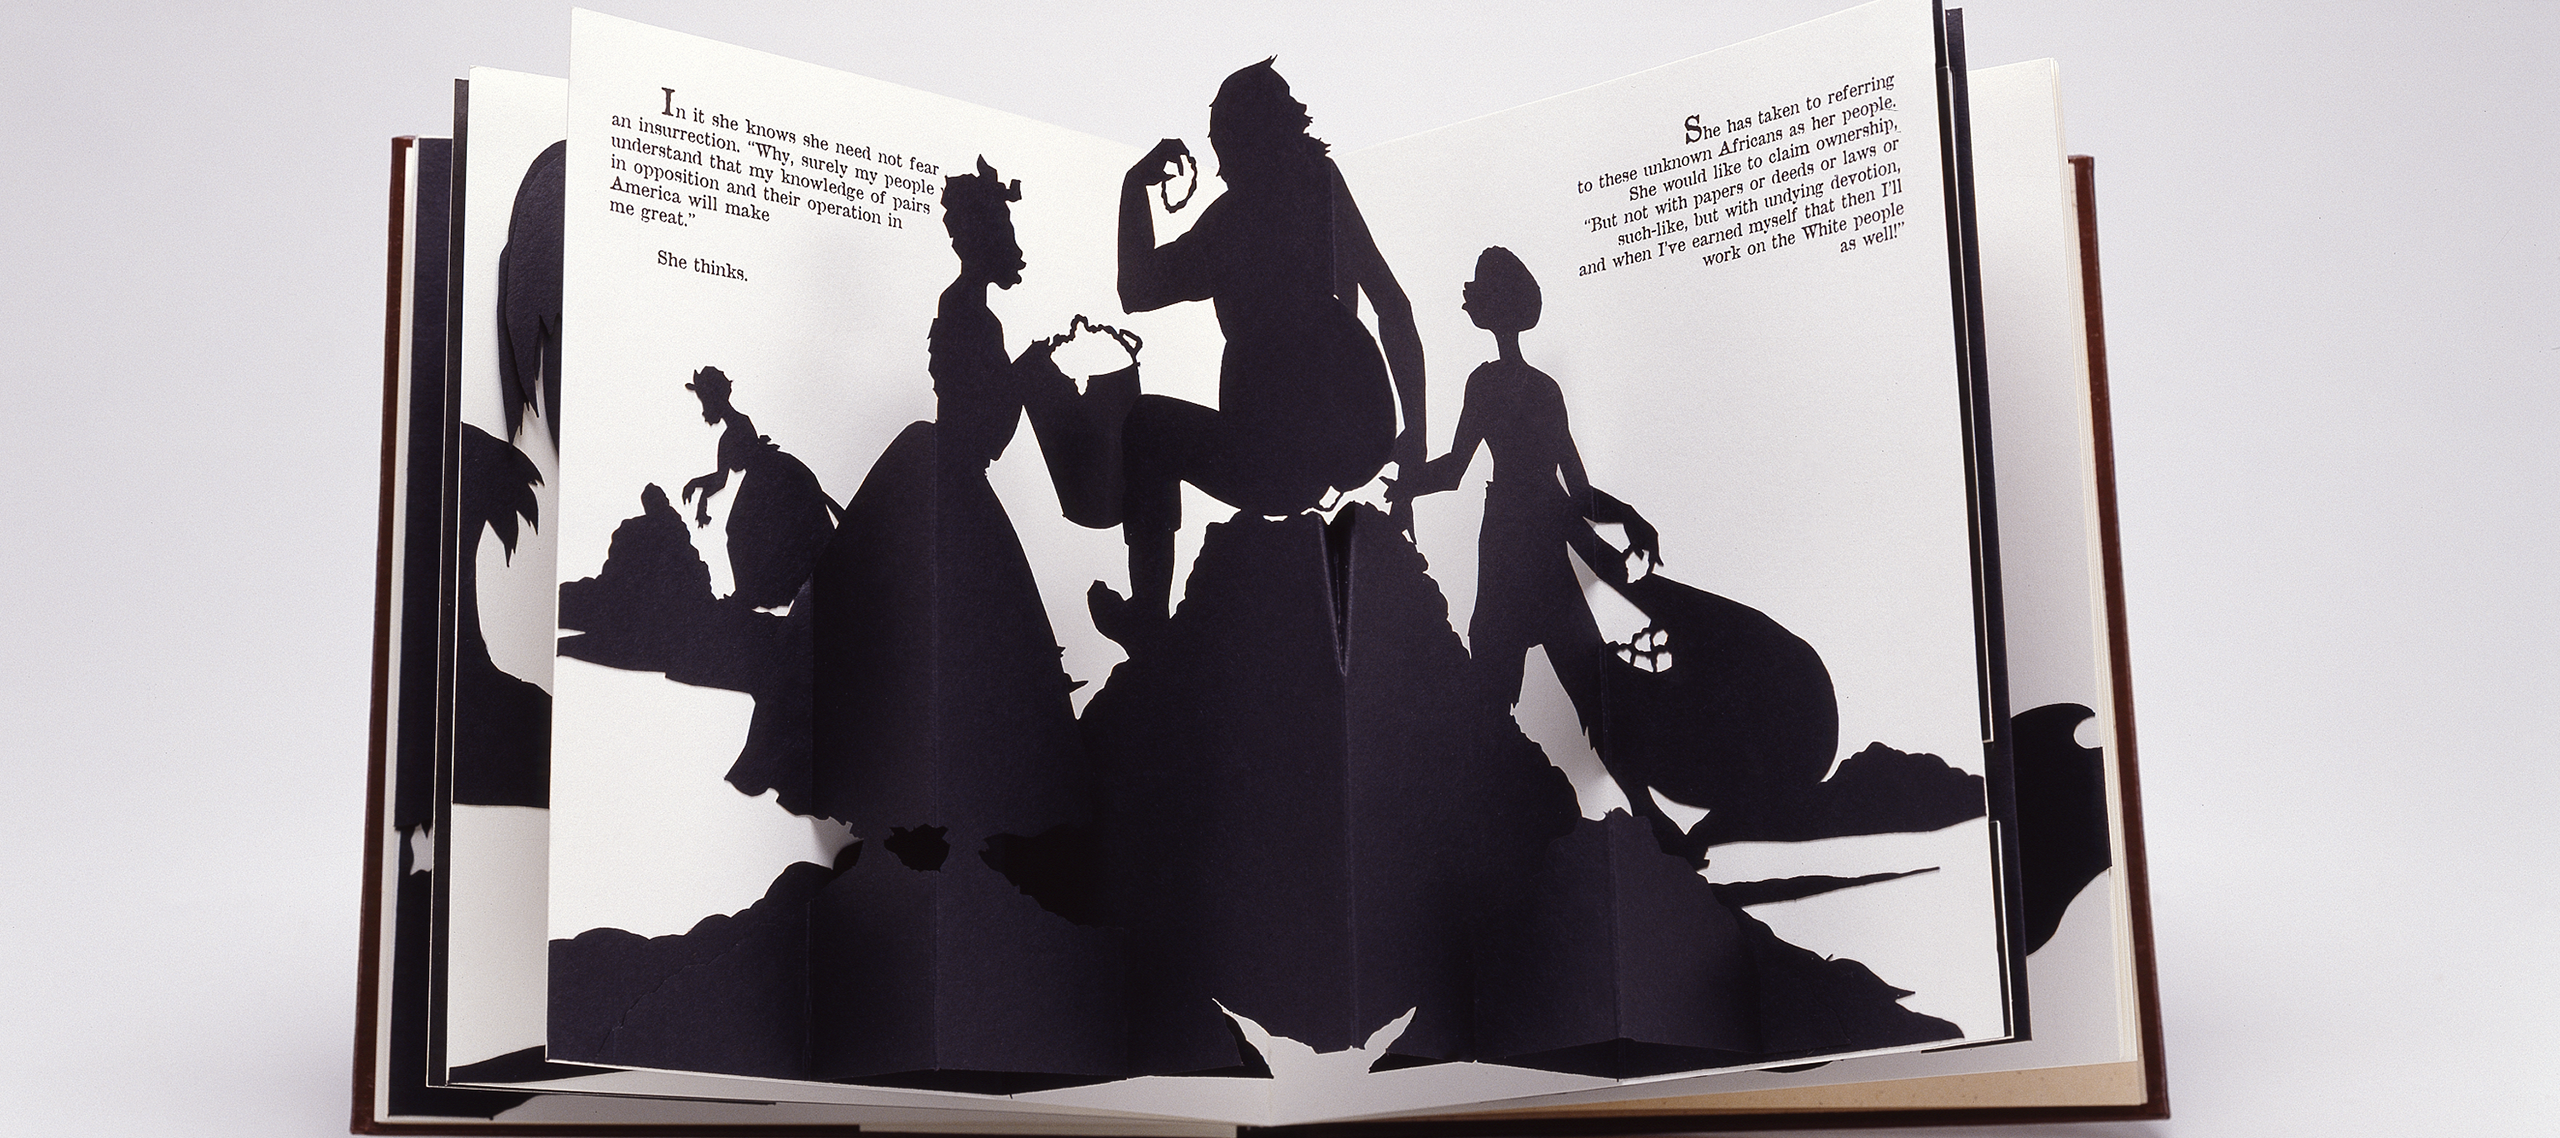 Four black silhouetted figures emerge from the white, open pages of a pop-up book. They appear to be engaged in manual labor. Two of the figures wear full floor-length skirts.